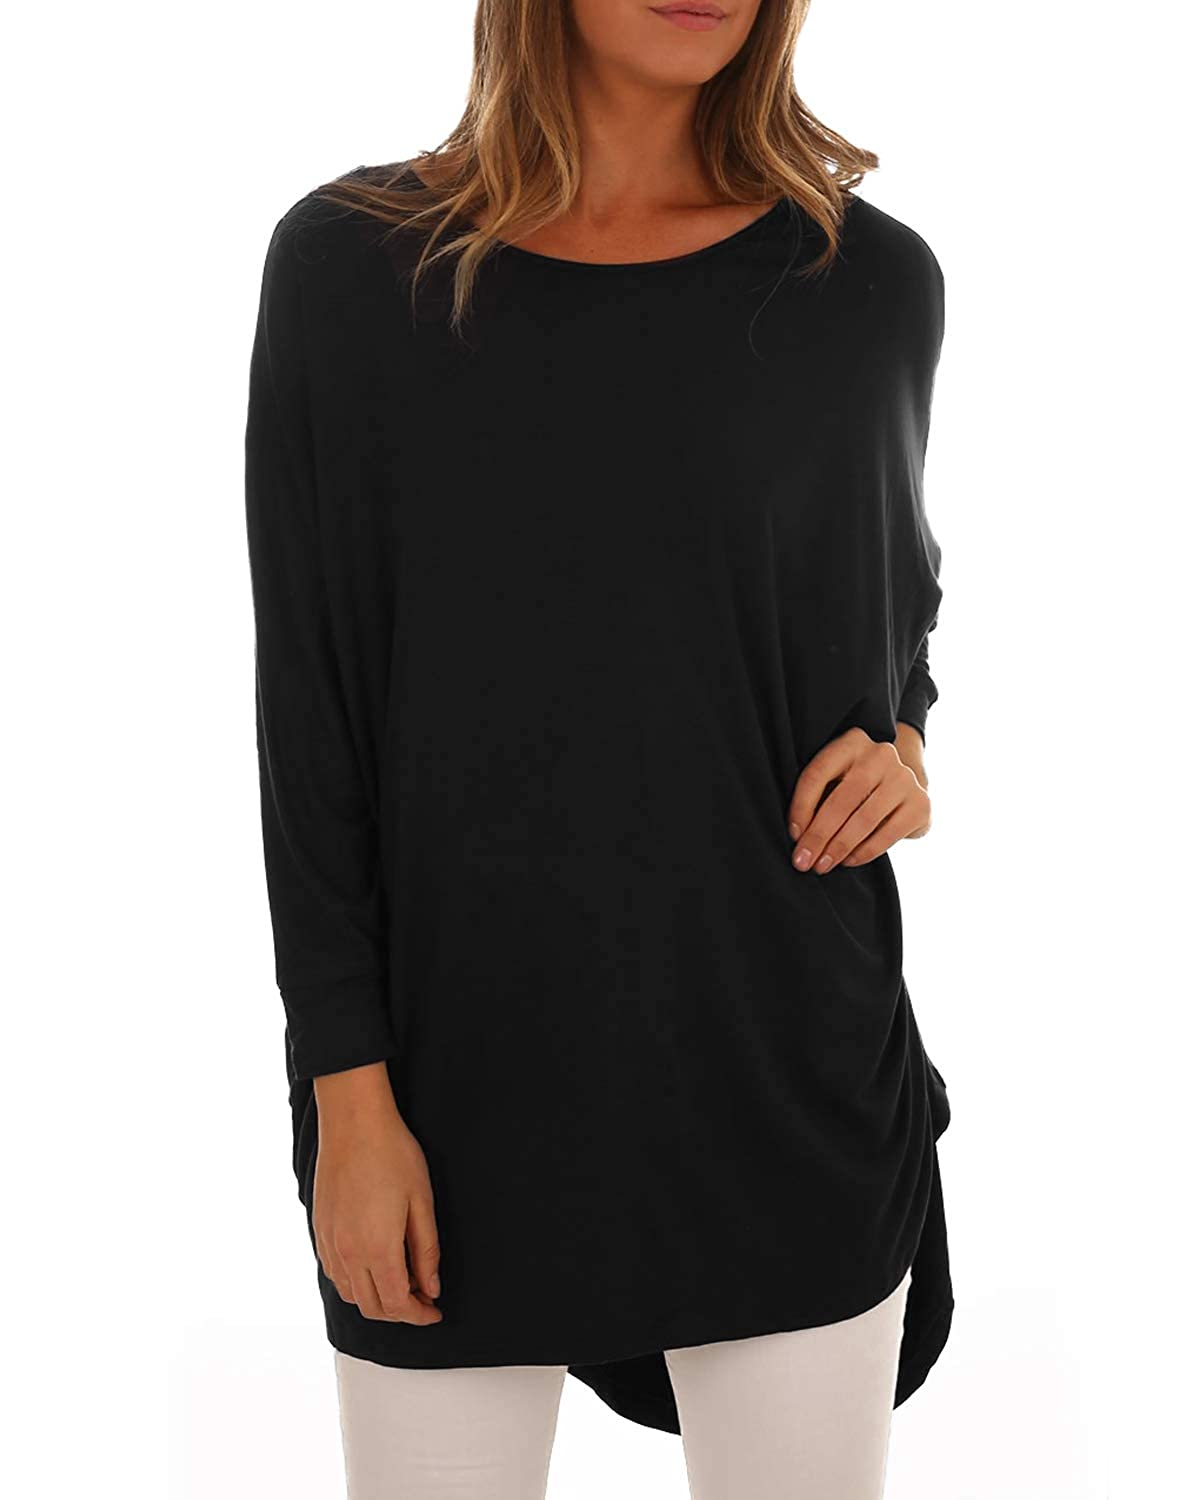 ACHIOOWA Women Tops Jumper Oversized Batwing Sleeve Laides Tops Cowl Neck Pullover Knitted Baggy T-Shirt Sweatshirt